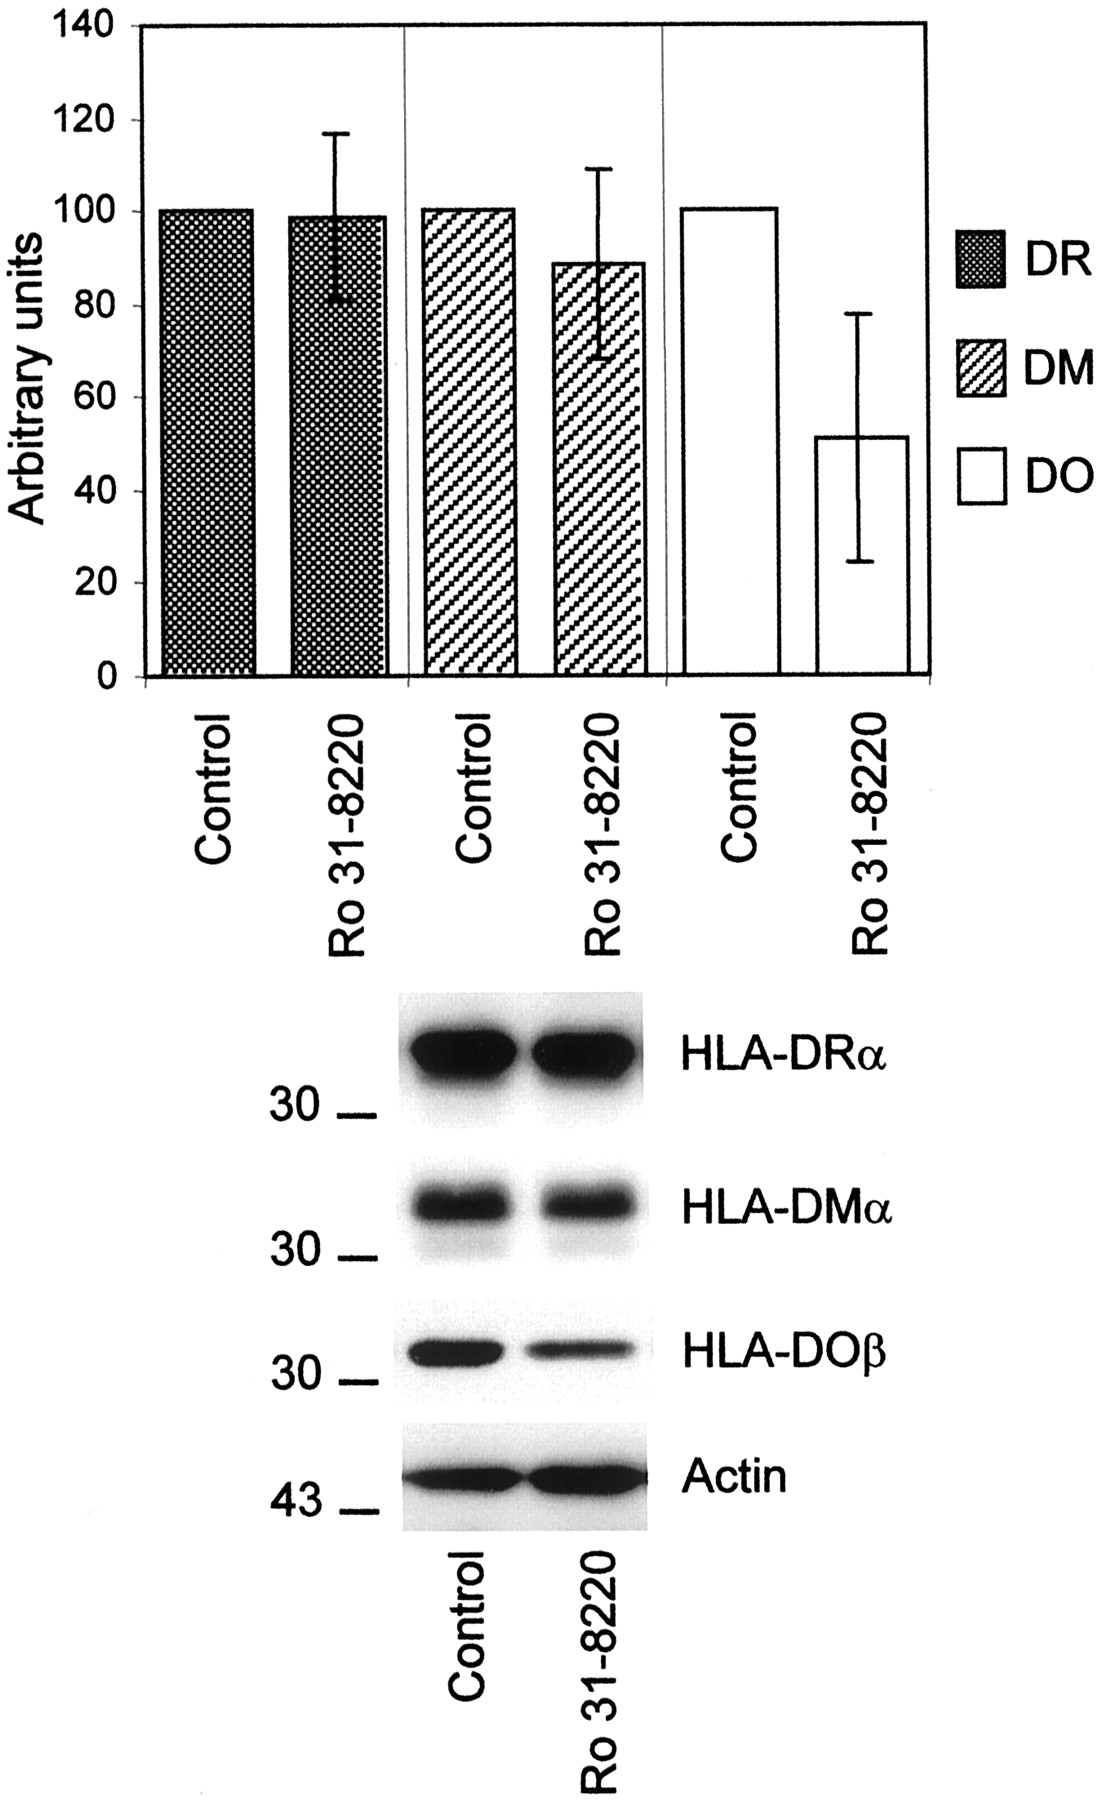 In Vivo and In Vitro Modulation of HLA-DM and HLA-DO Is